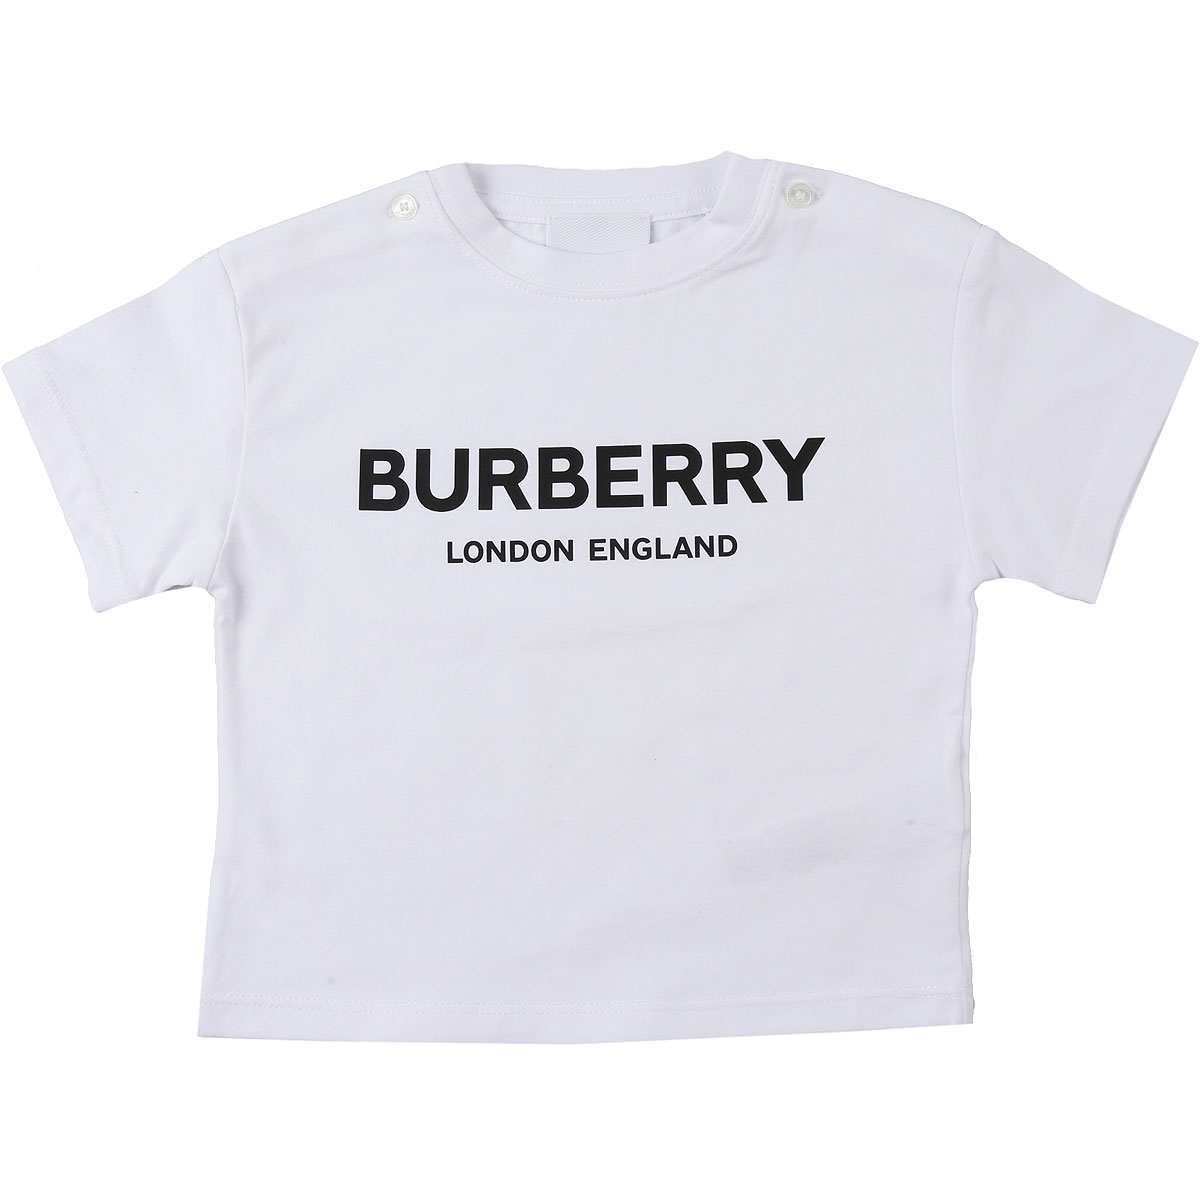 Burberry Baby T-Shirt for Boys On Sale, White, Cotton, 2019, 12 M 18M 6M